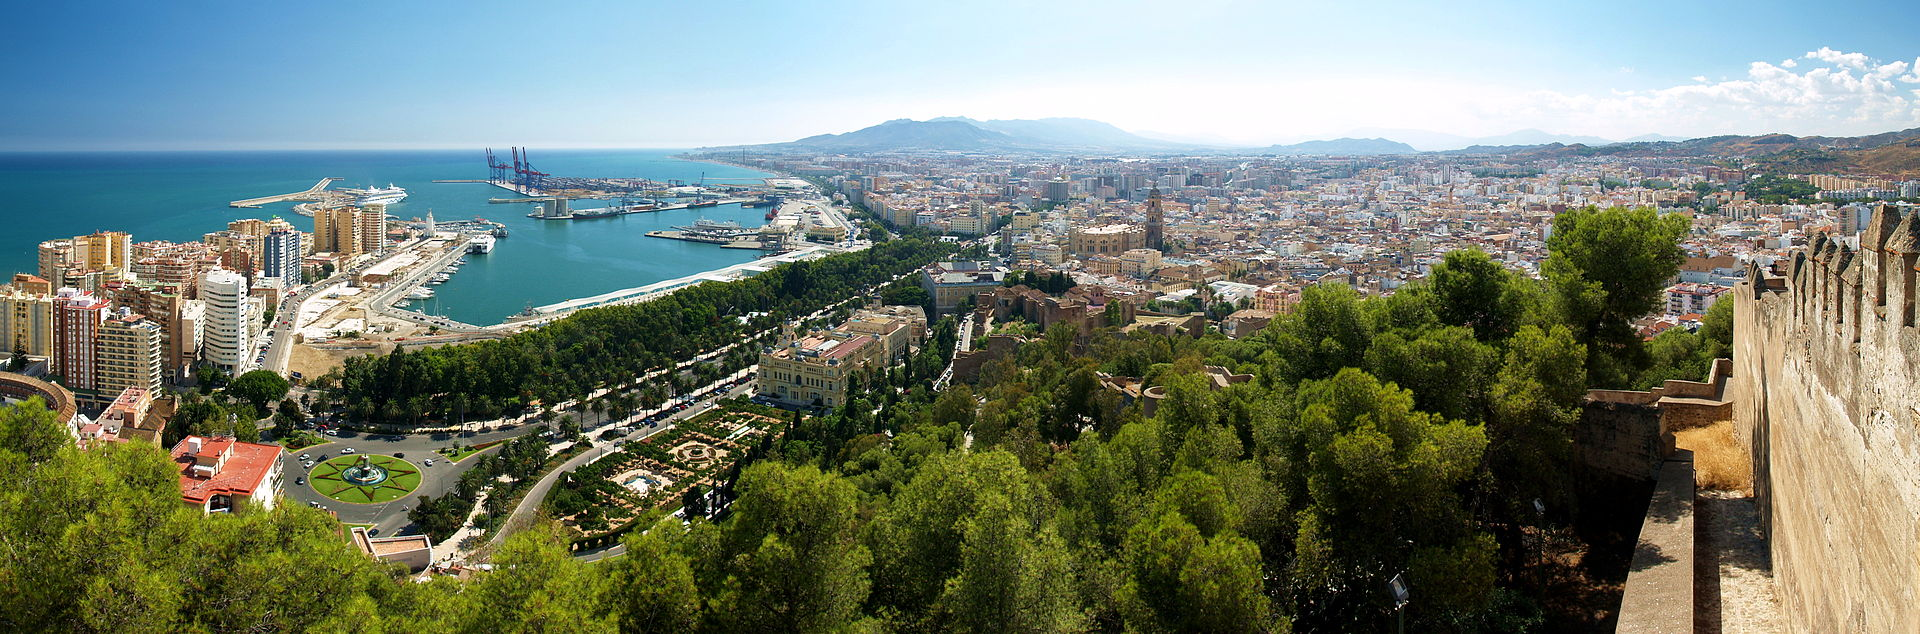 Panoramic view of Málaga from Gibralfaro (Photo: Kiban)